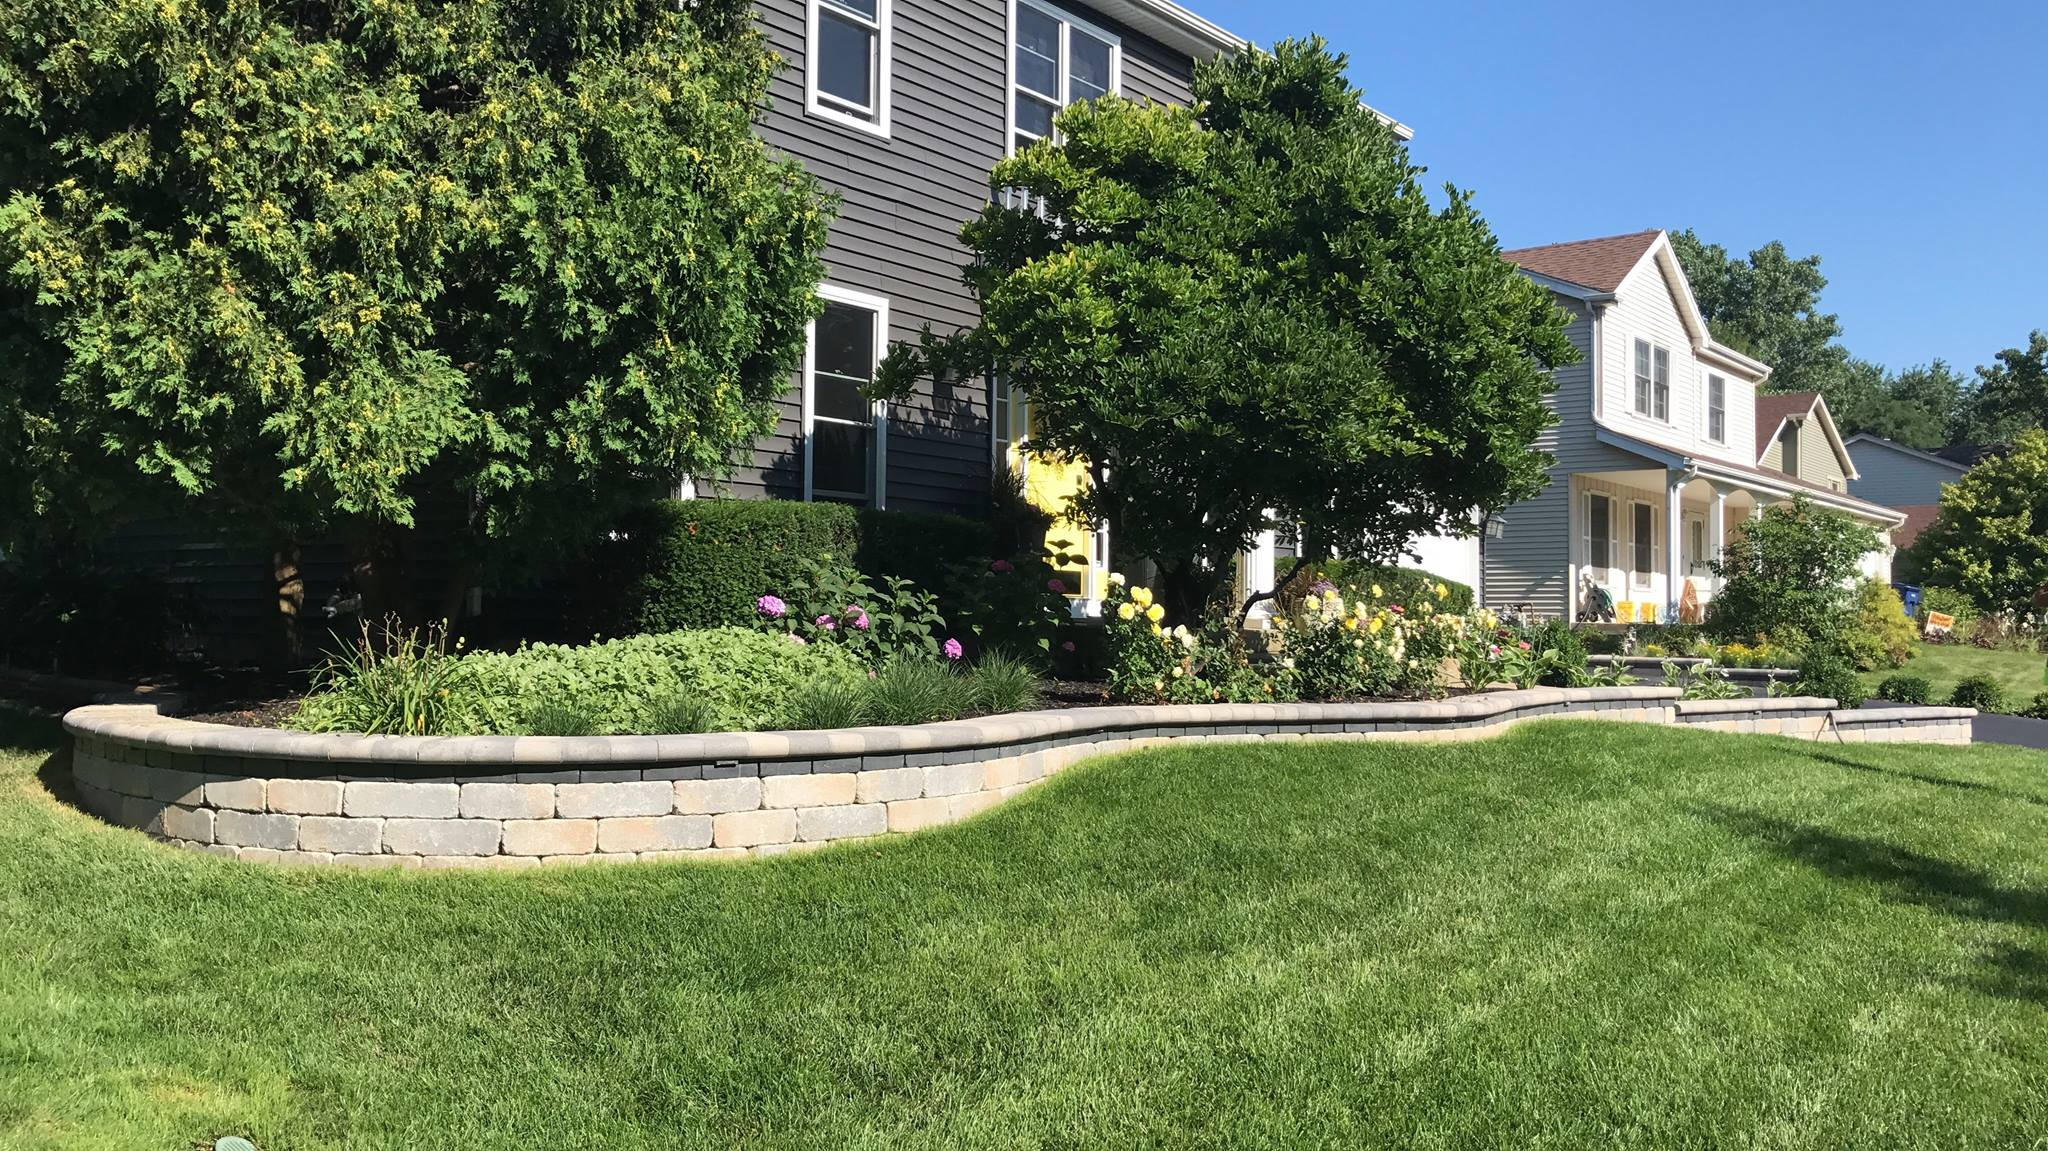 Which Commercial Landscaping Services Do Multi-Family Communities Need?